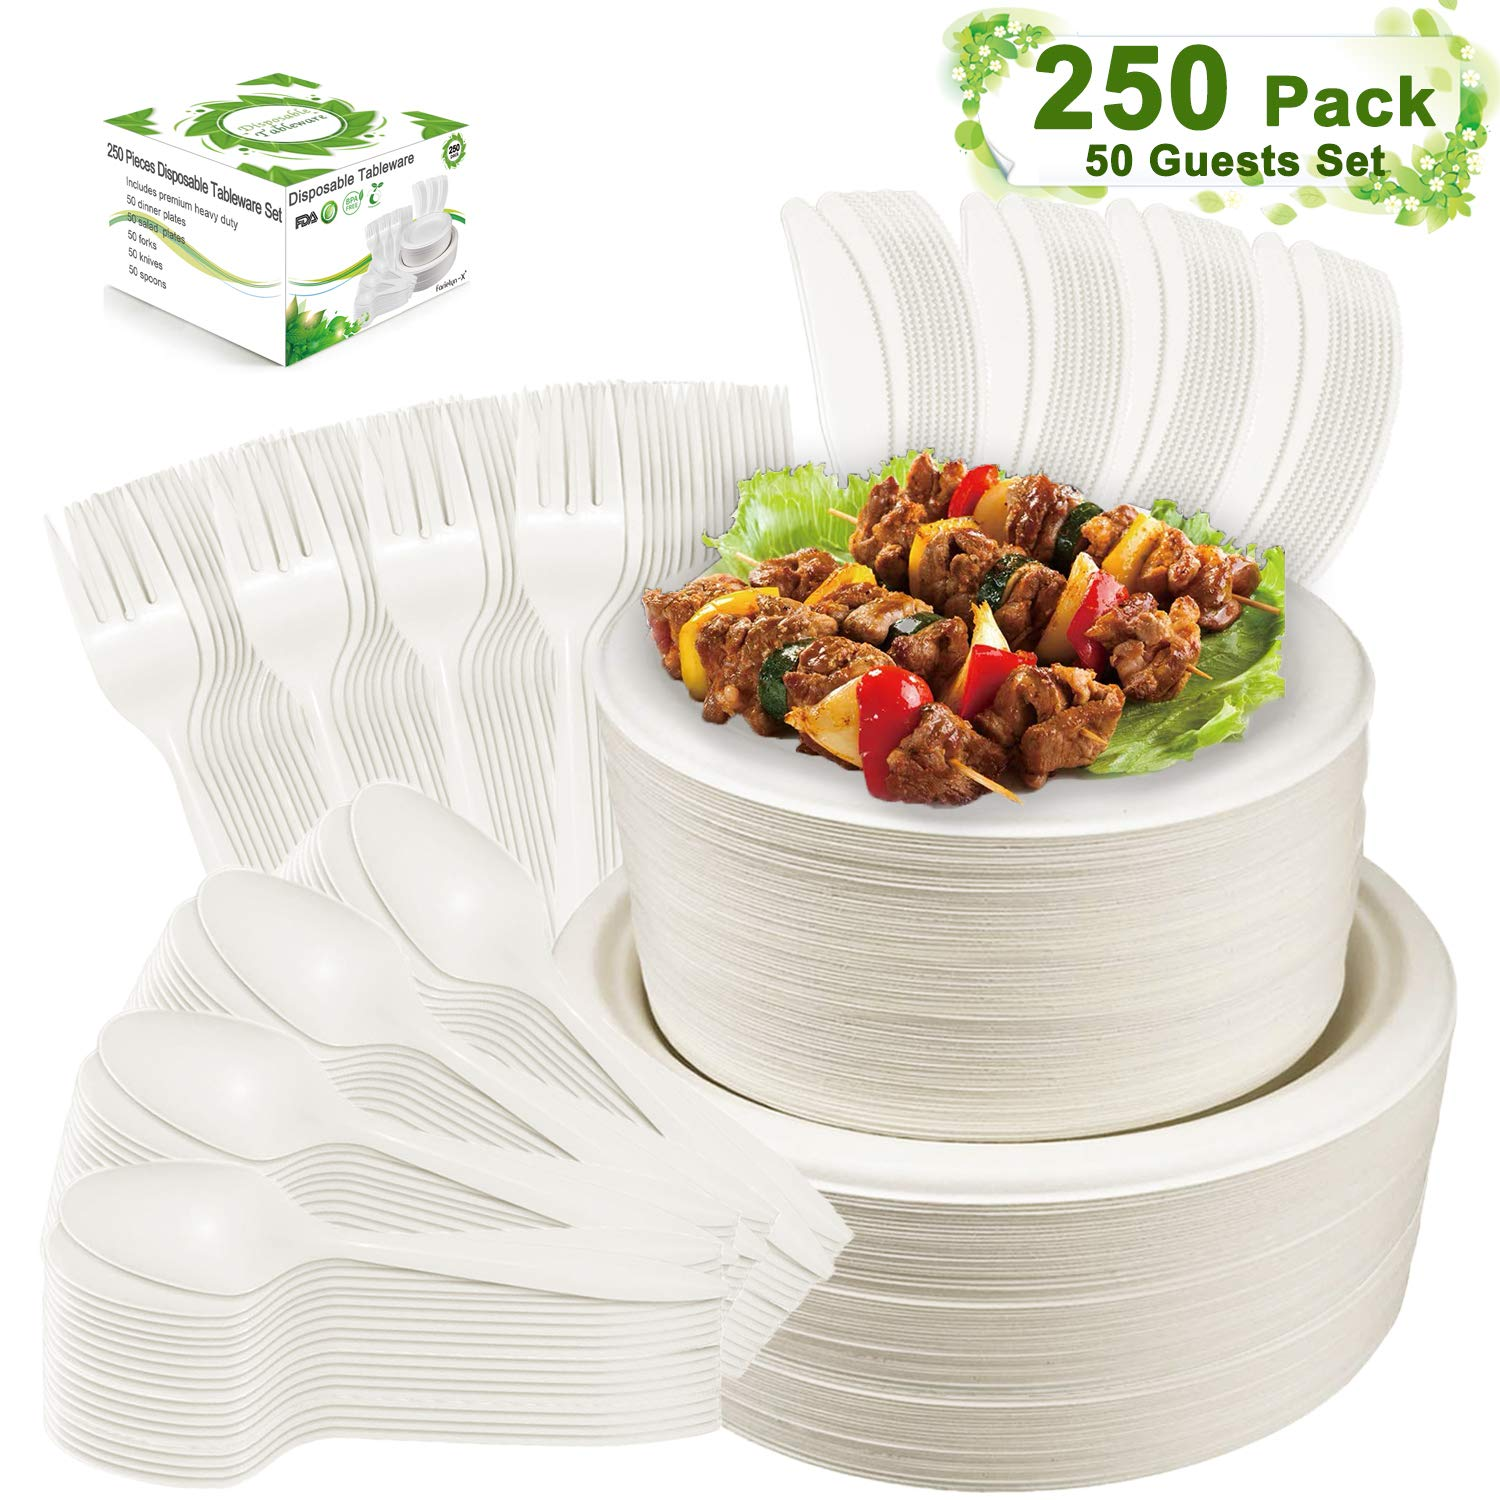 Farieyln-X 250 Pcs Disposable Dinnerware Set Compostable Sugarcane Cutlery Tableware Paper Plates and Dinner Plates, Knives, Spoons and Forks Combo for Birthday Party BBQ Picnic (50 Guests)